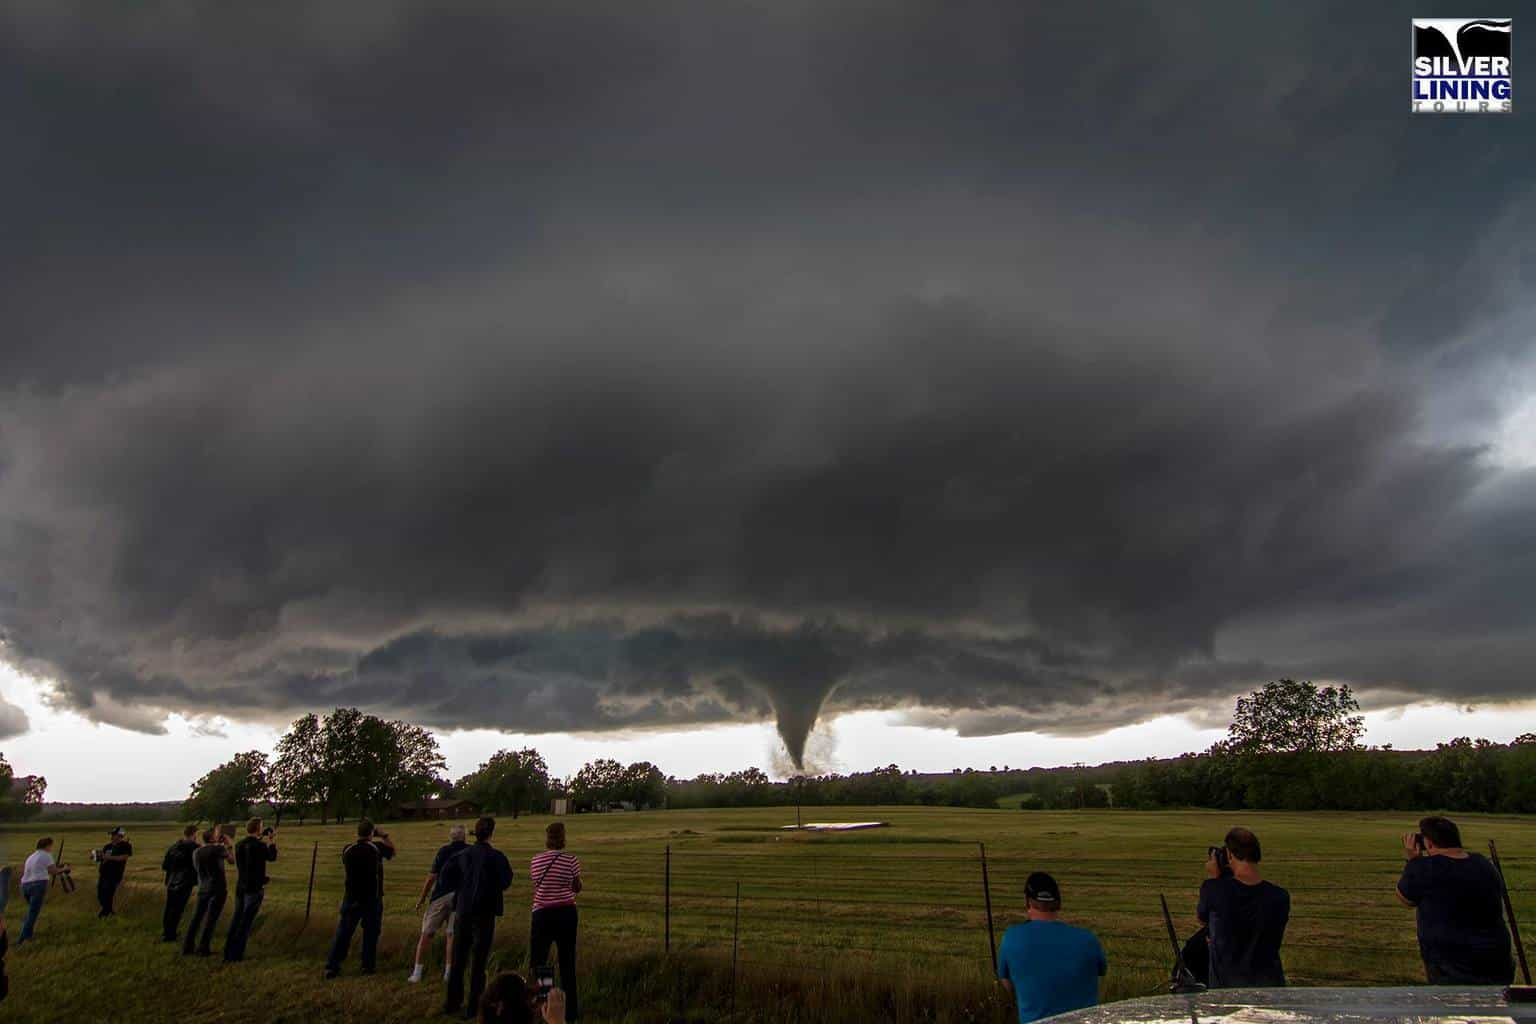 Silver Lining Tours observing a tornado in Wynnewood, OK on May 9th 2016.